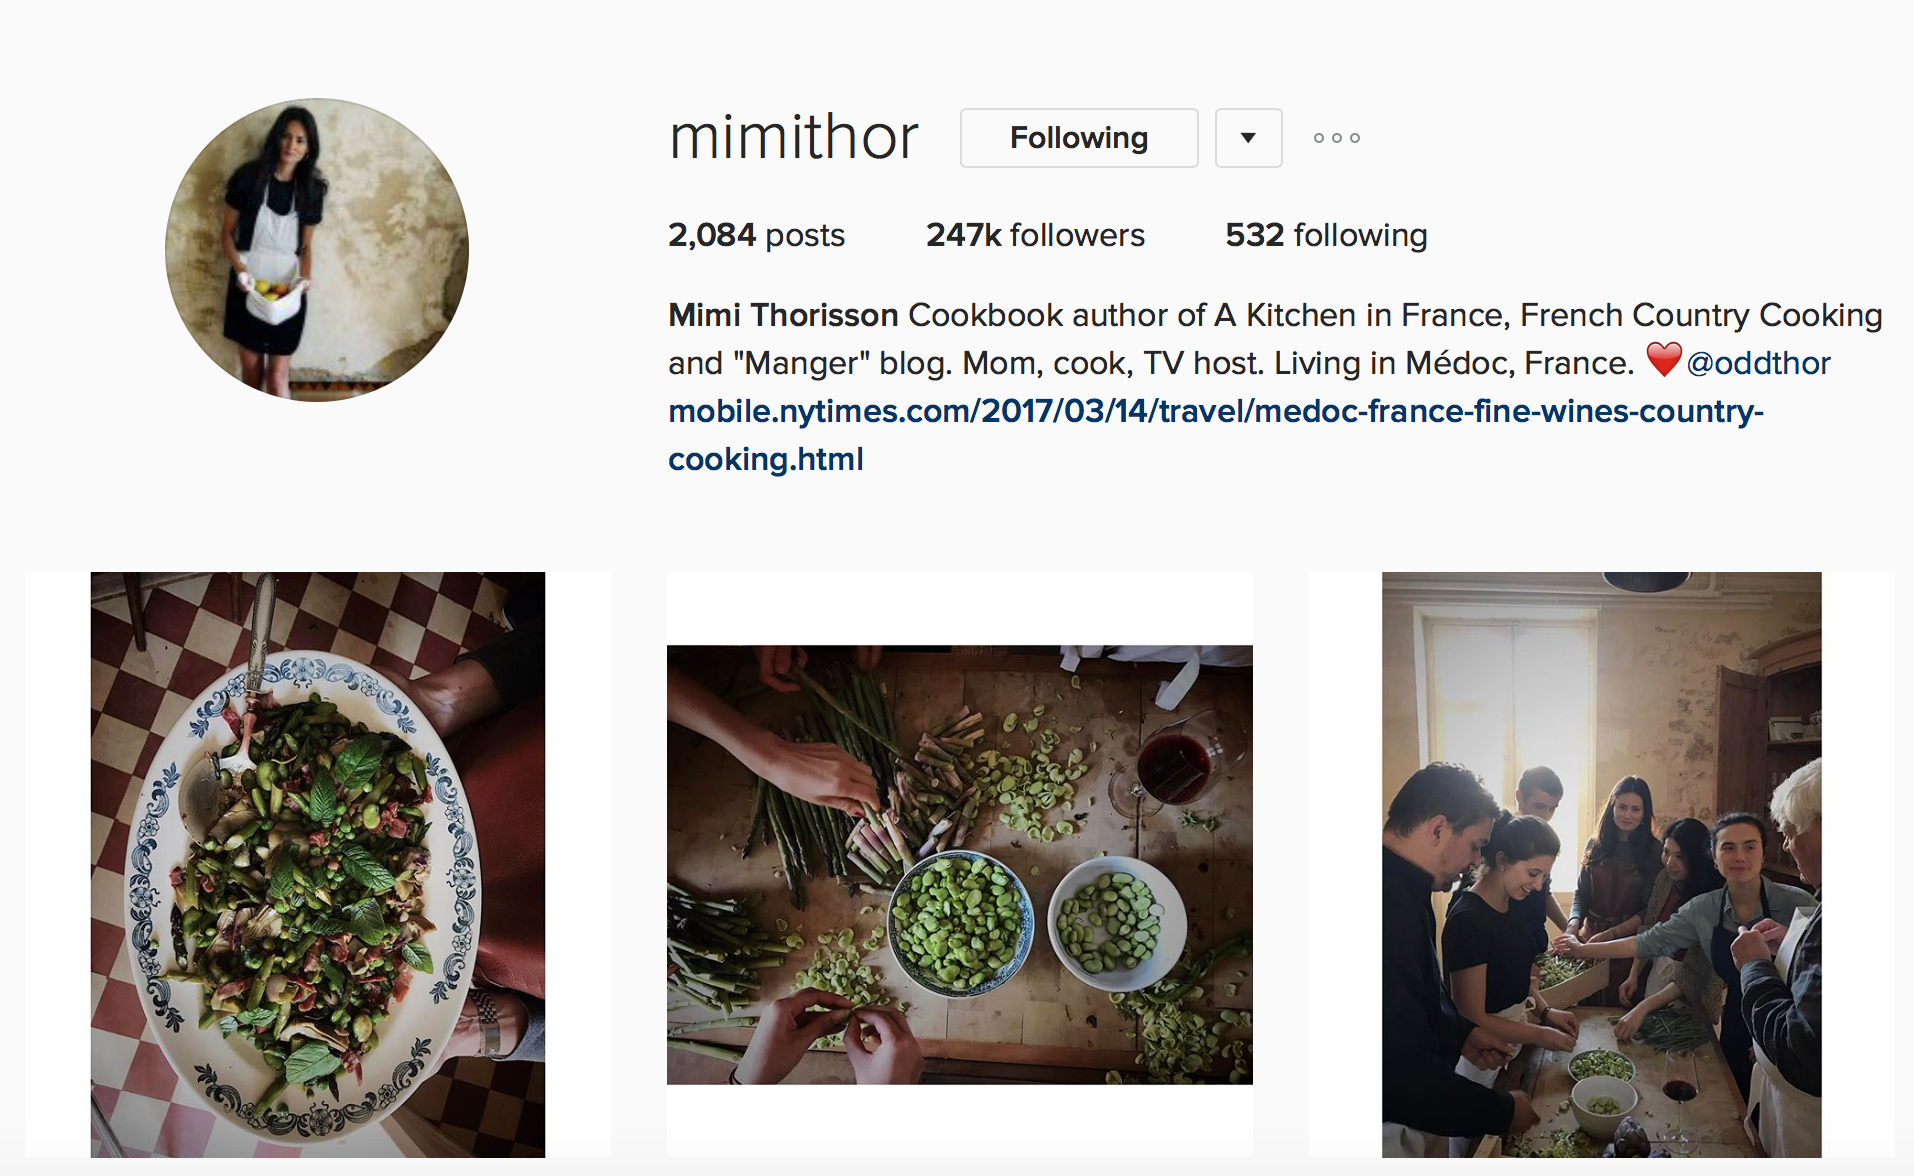 Inspiring Instagram Accounts to Follow Mimi Thor